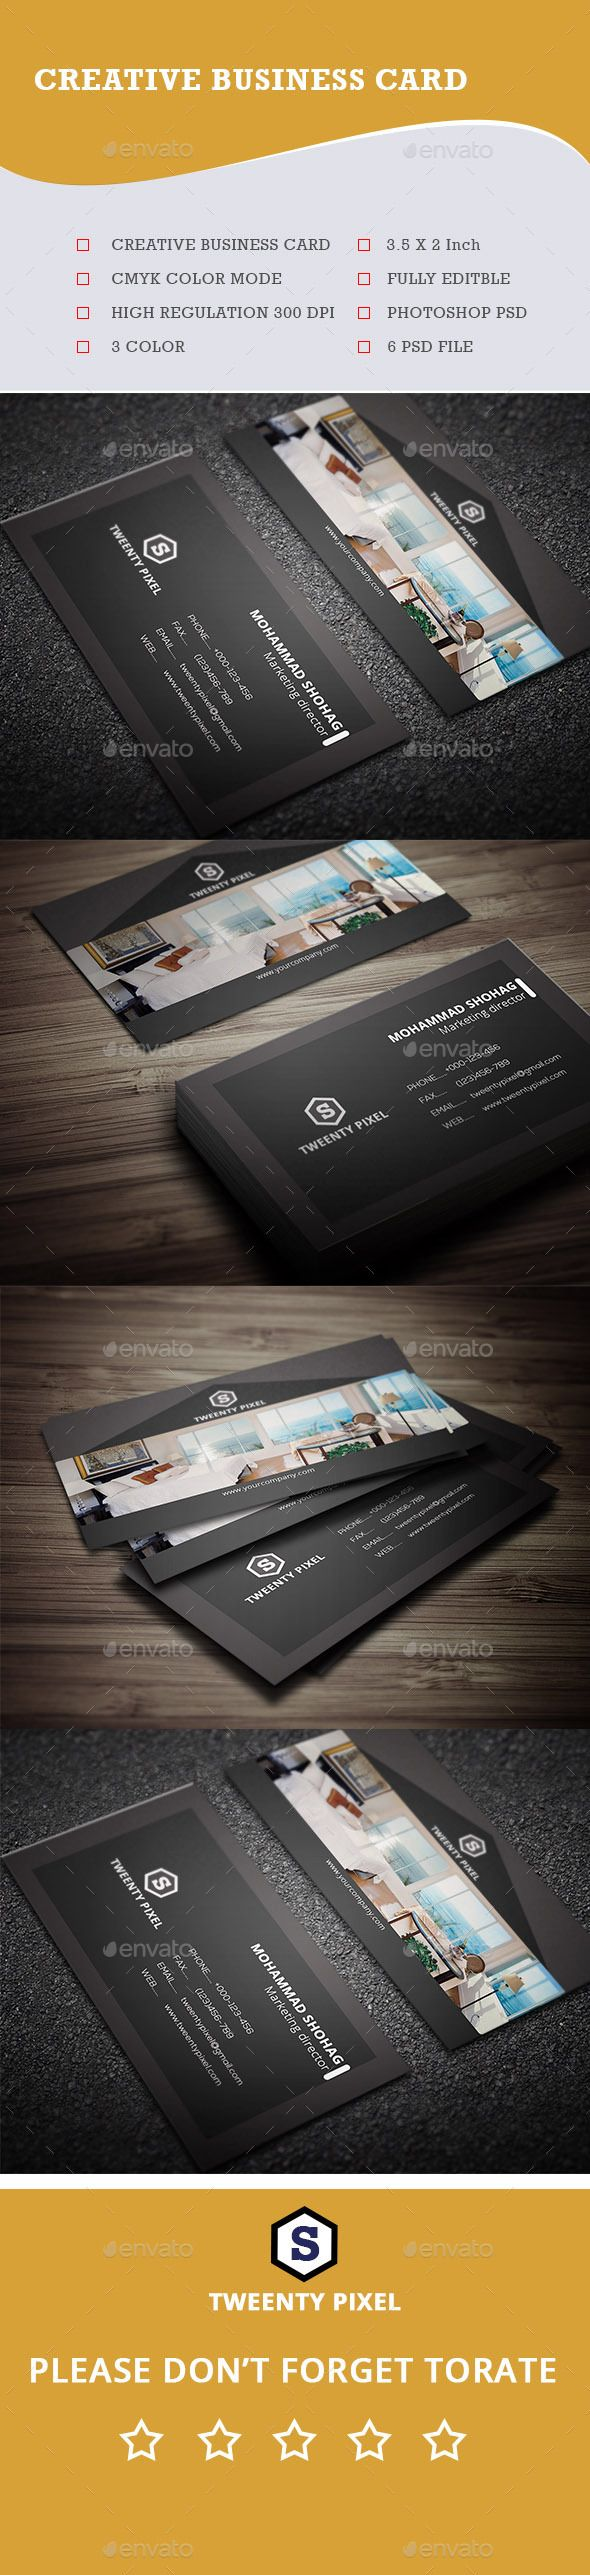 Real Estate Creative Business Card Template PSD #design Download: http://graphicriver.net/item/real-estate-creative-business-card/14163576?ref=ksioks